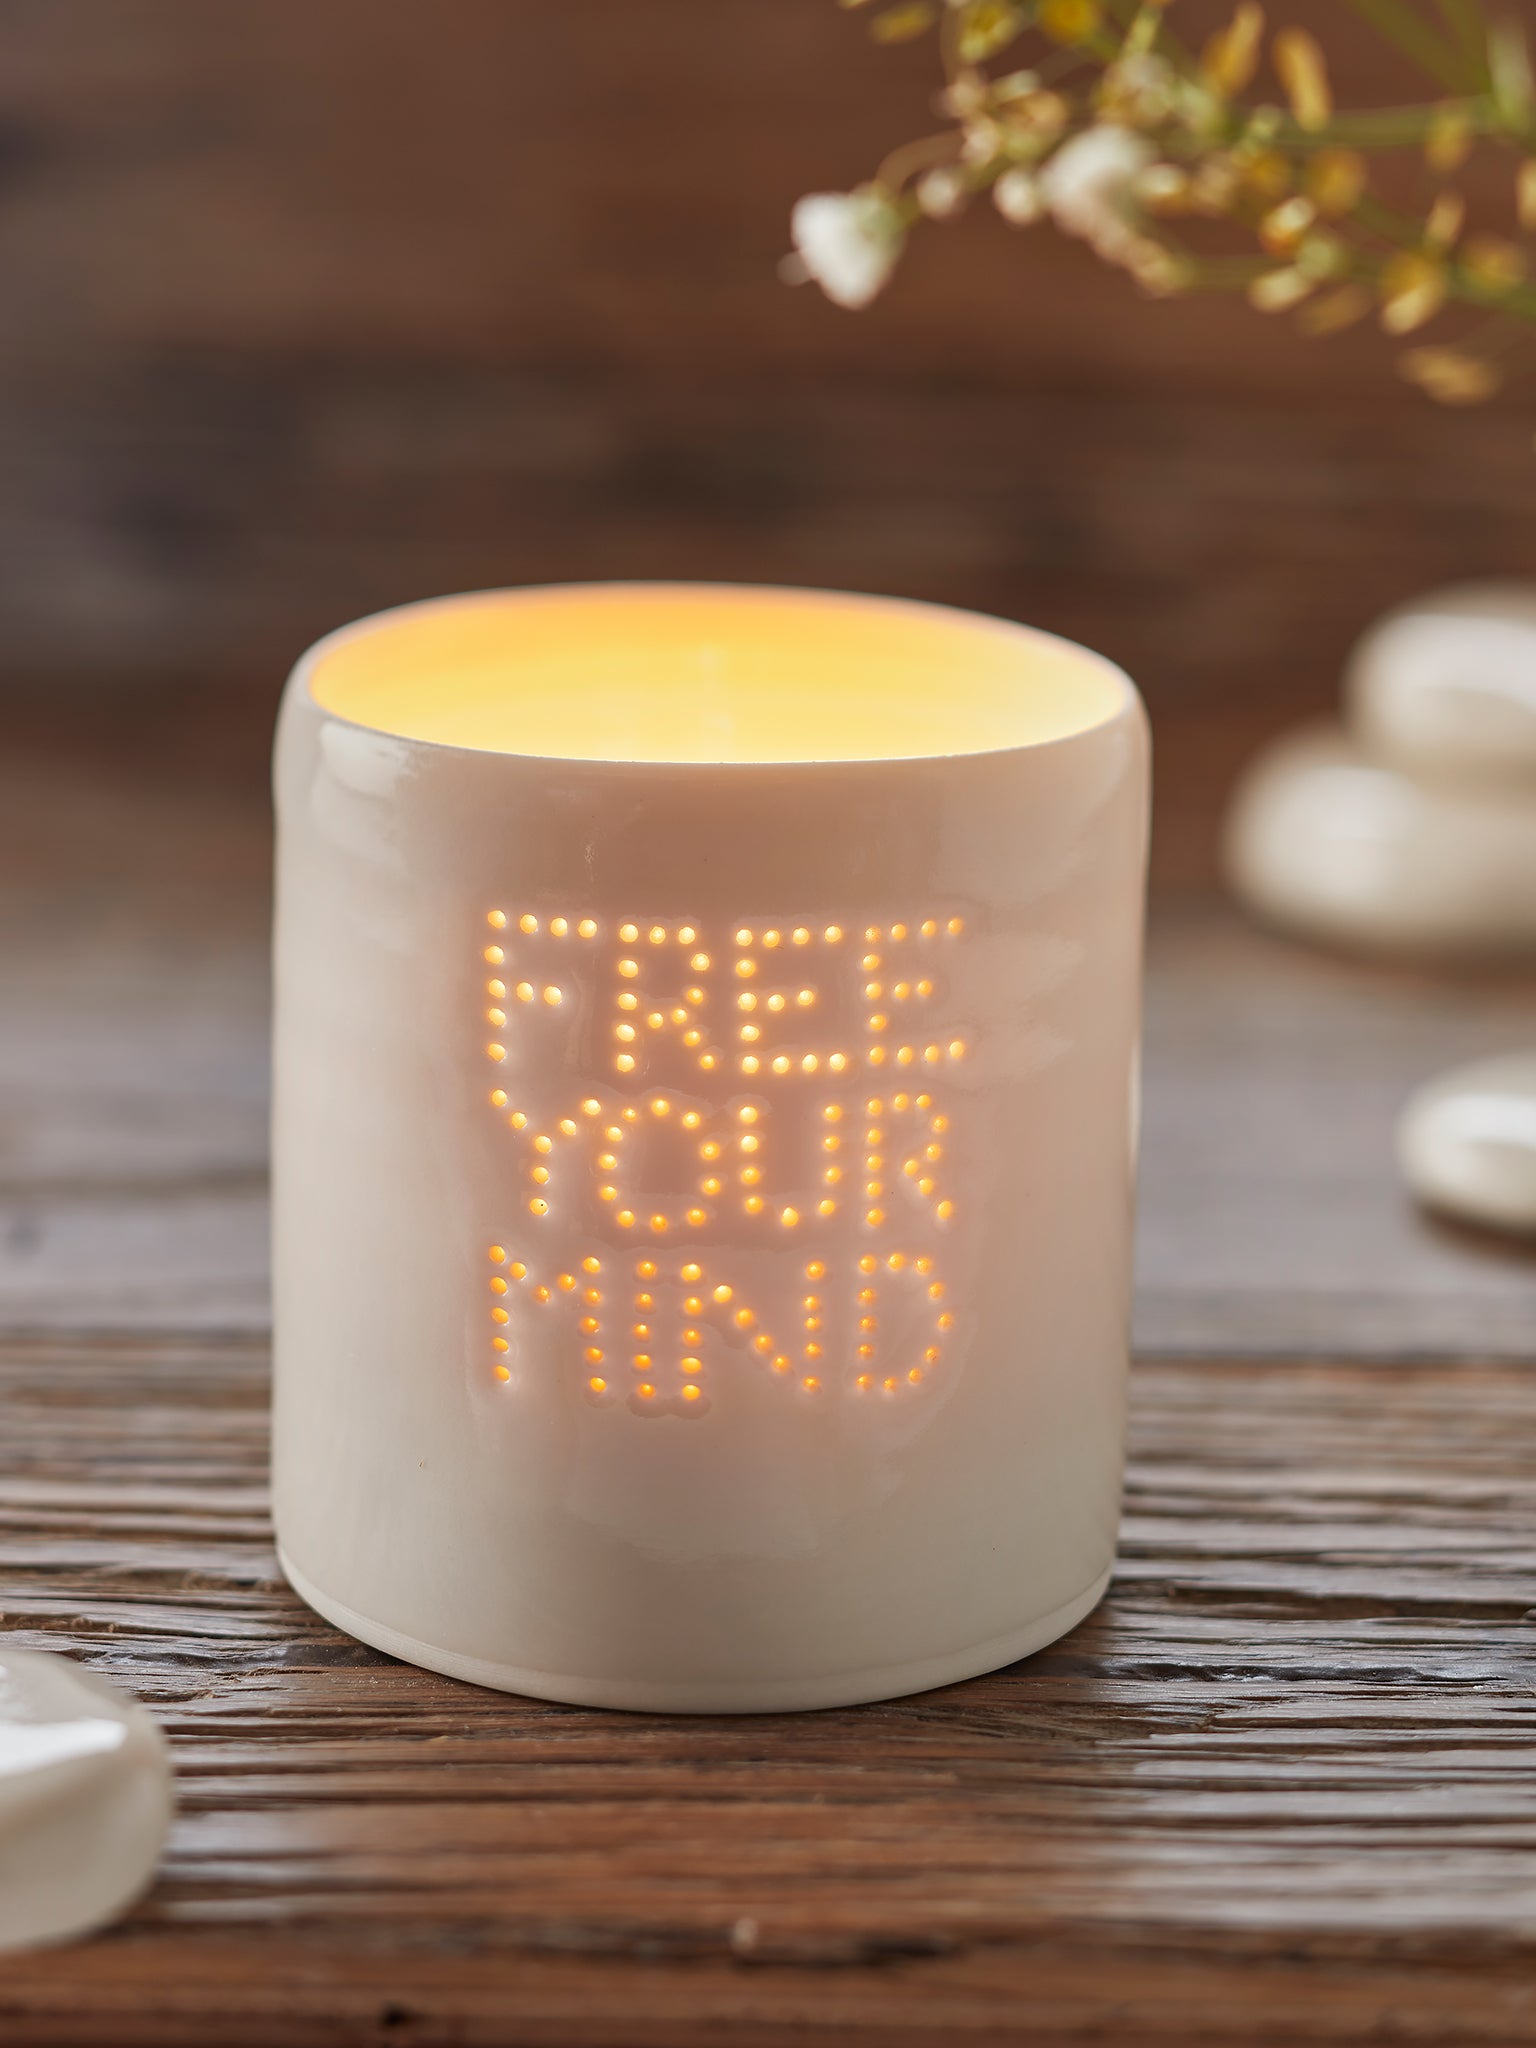 Yogamatters Handmade Porcelain Tea Light Holder - Free Your Mind